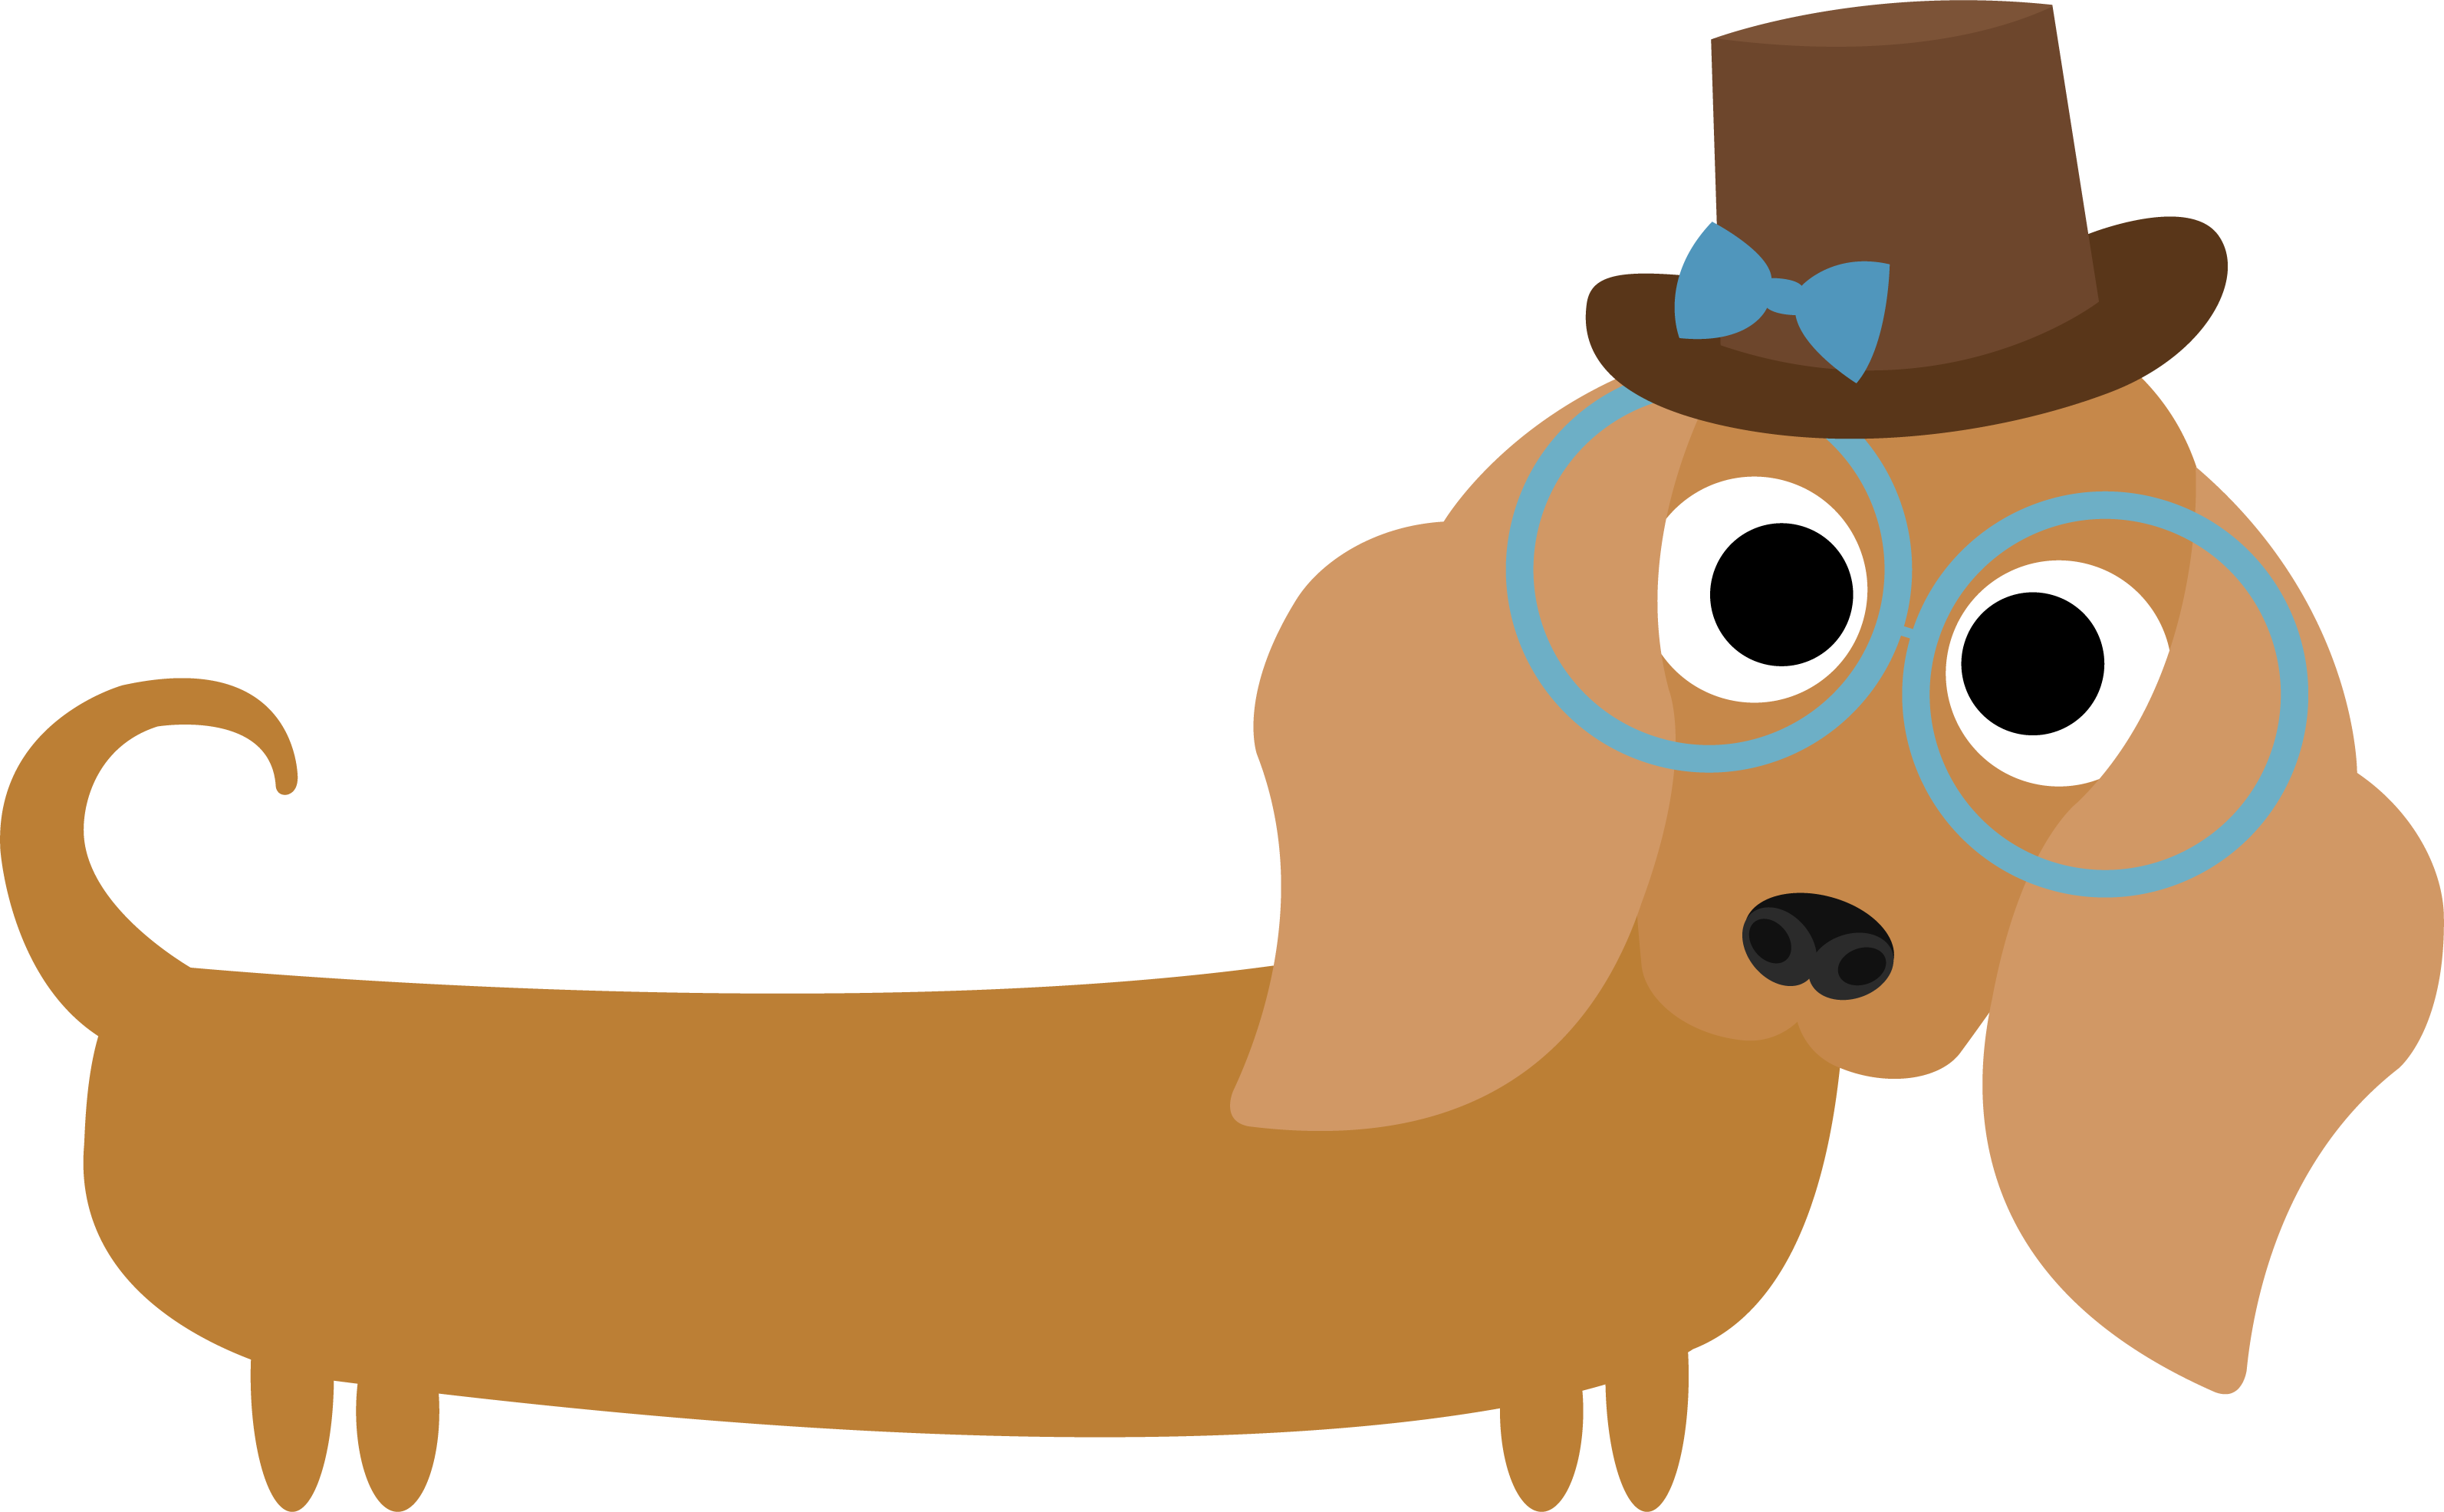 3187x1972 Collection Of Dachshund Halloween Clipart High Quality, Free